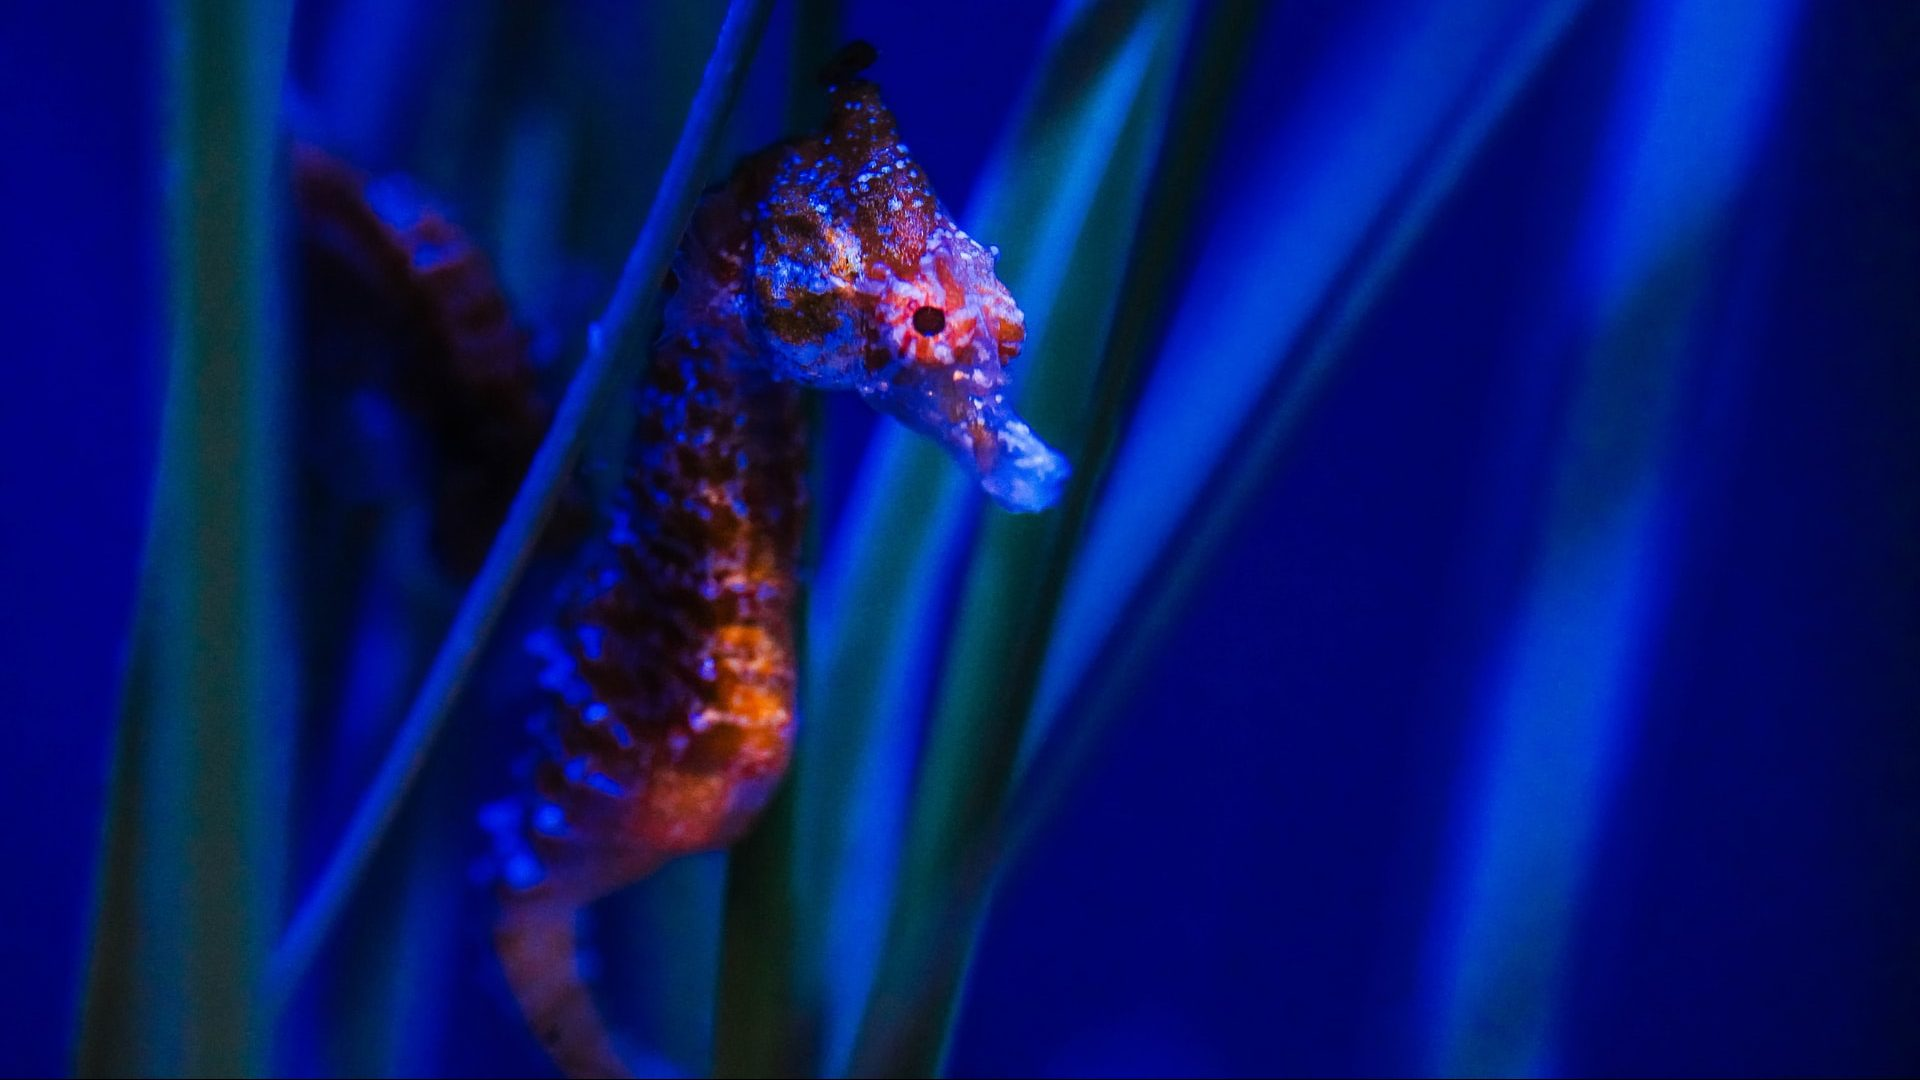 Learning Life's Gentle Lessons with the Seahorse Whisperer ...